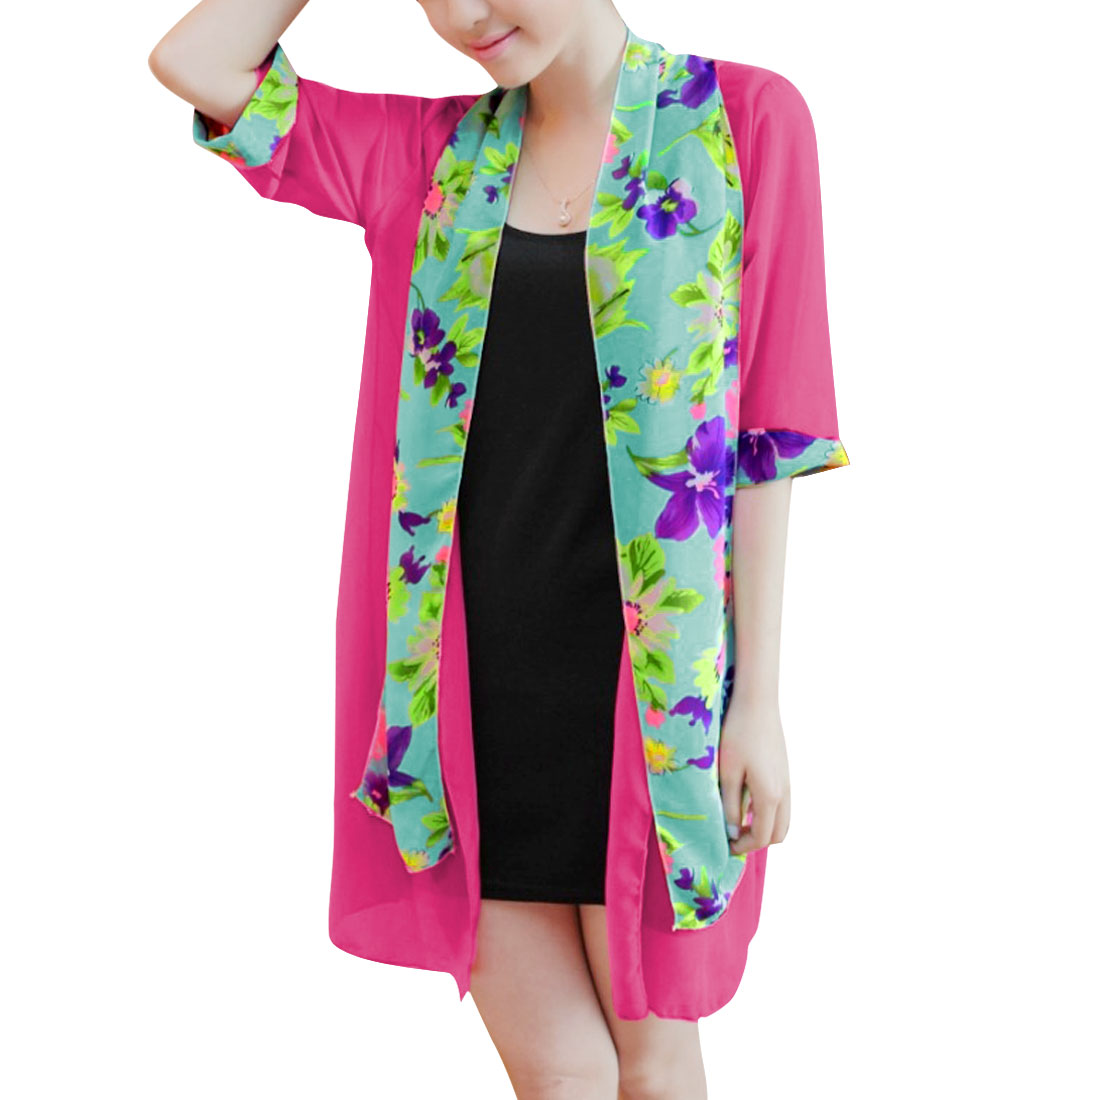 Ladies Layered Split Hem Chiffon Fashion Shirt Fuchsia S